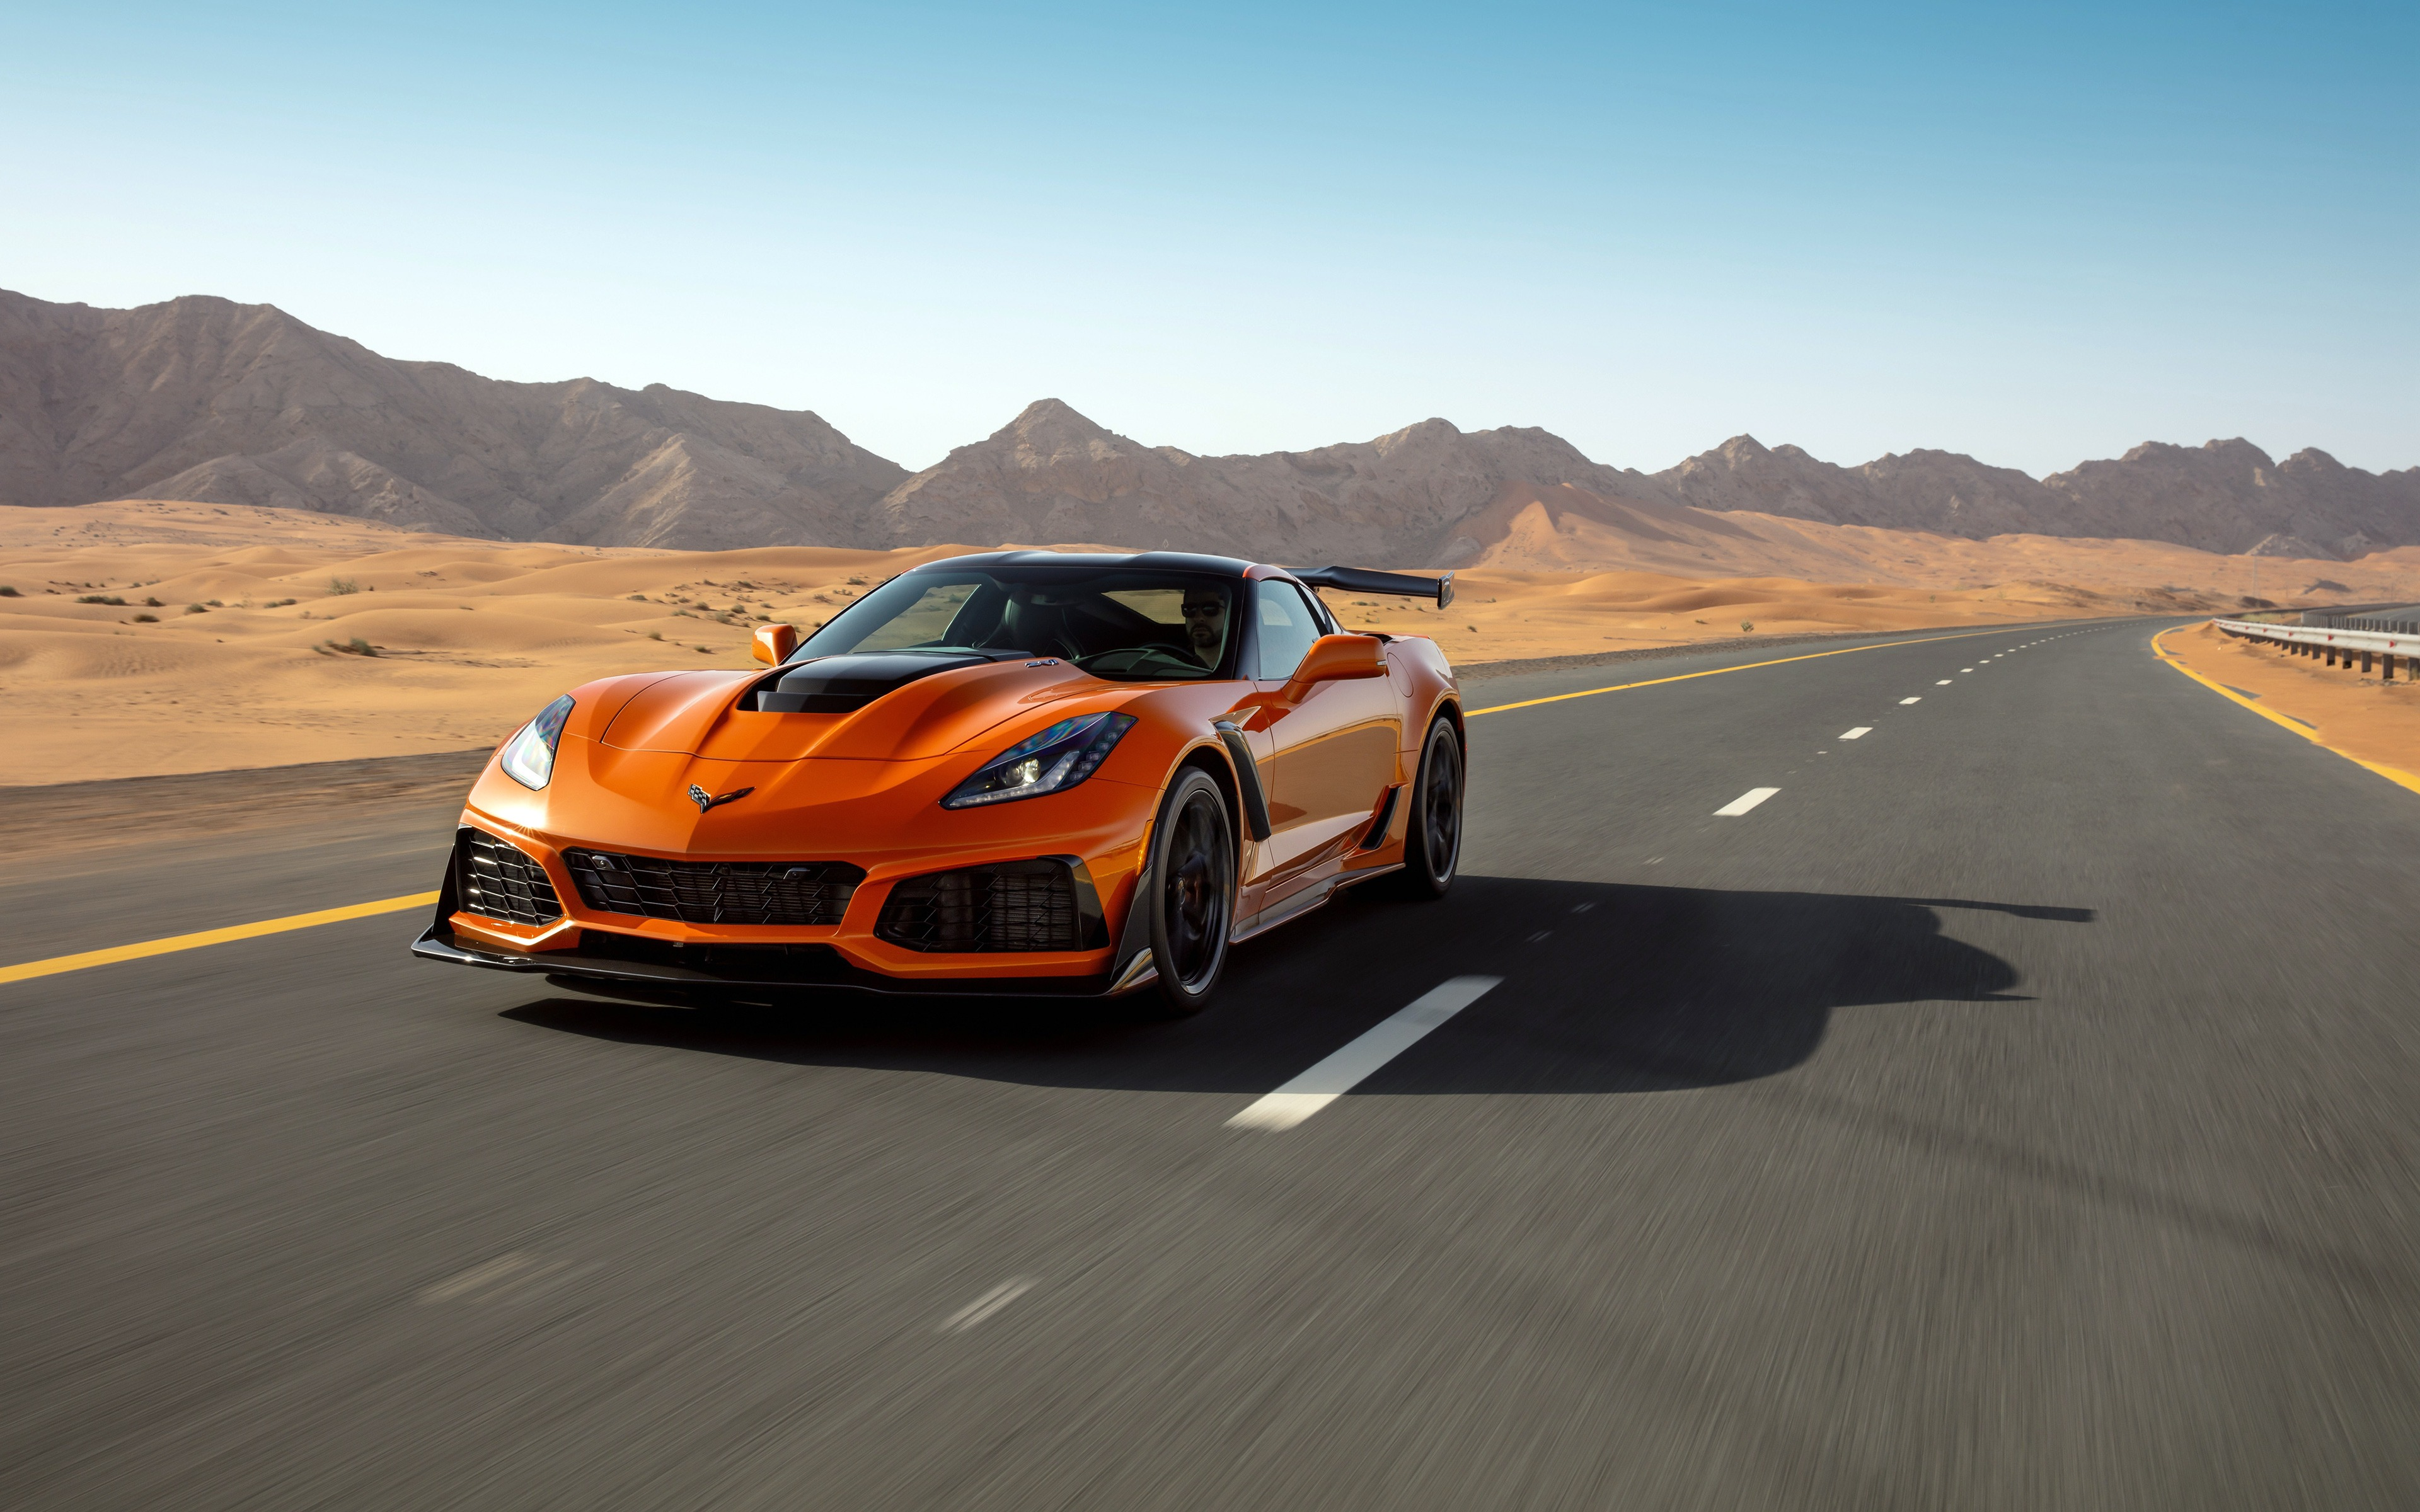 2019 Chevrolet Corvette ZR1 HD Poster Preview ...